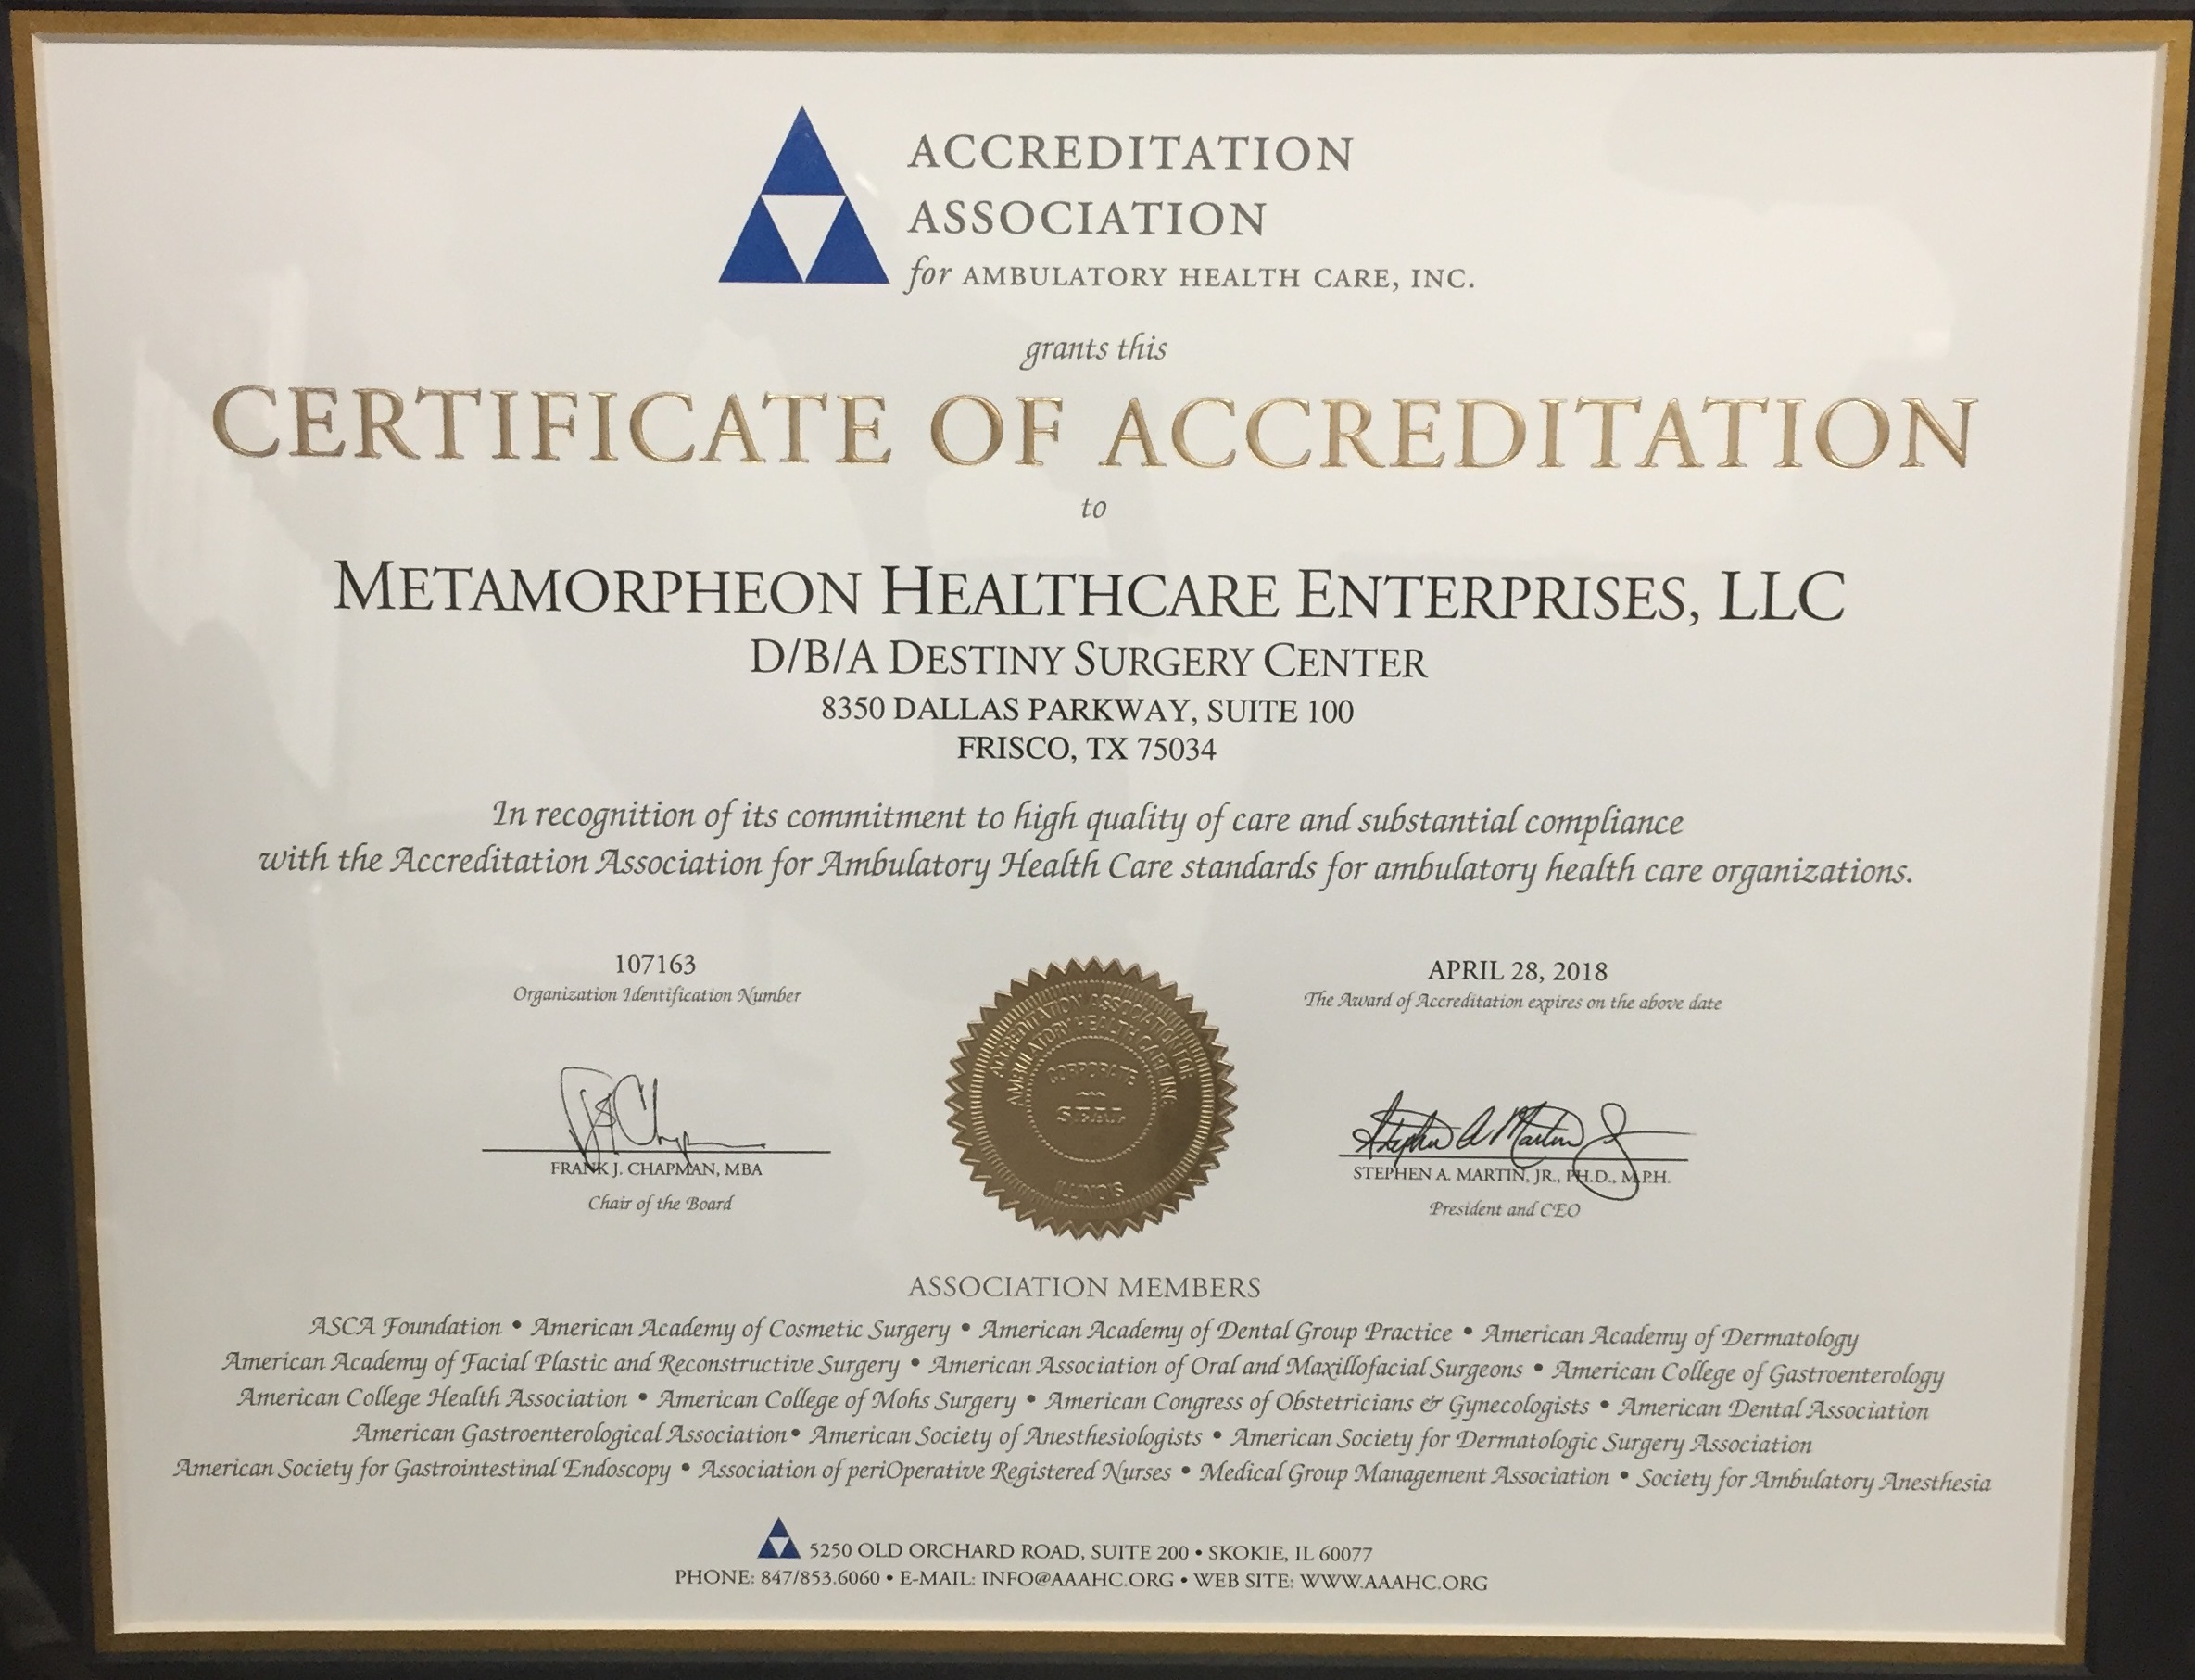 Destiny surgery center of frisco achieves ambulatory health care aaahc certificate for destiny surgery centerambulatory accreditation is extremely important to our team at destiny surgery center xflitez Images